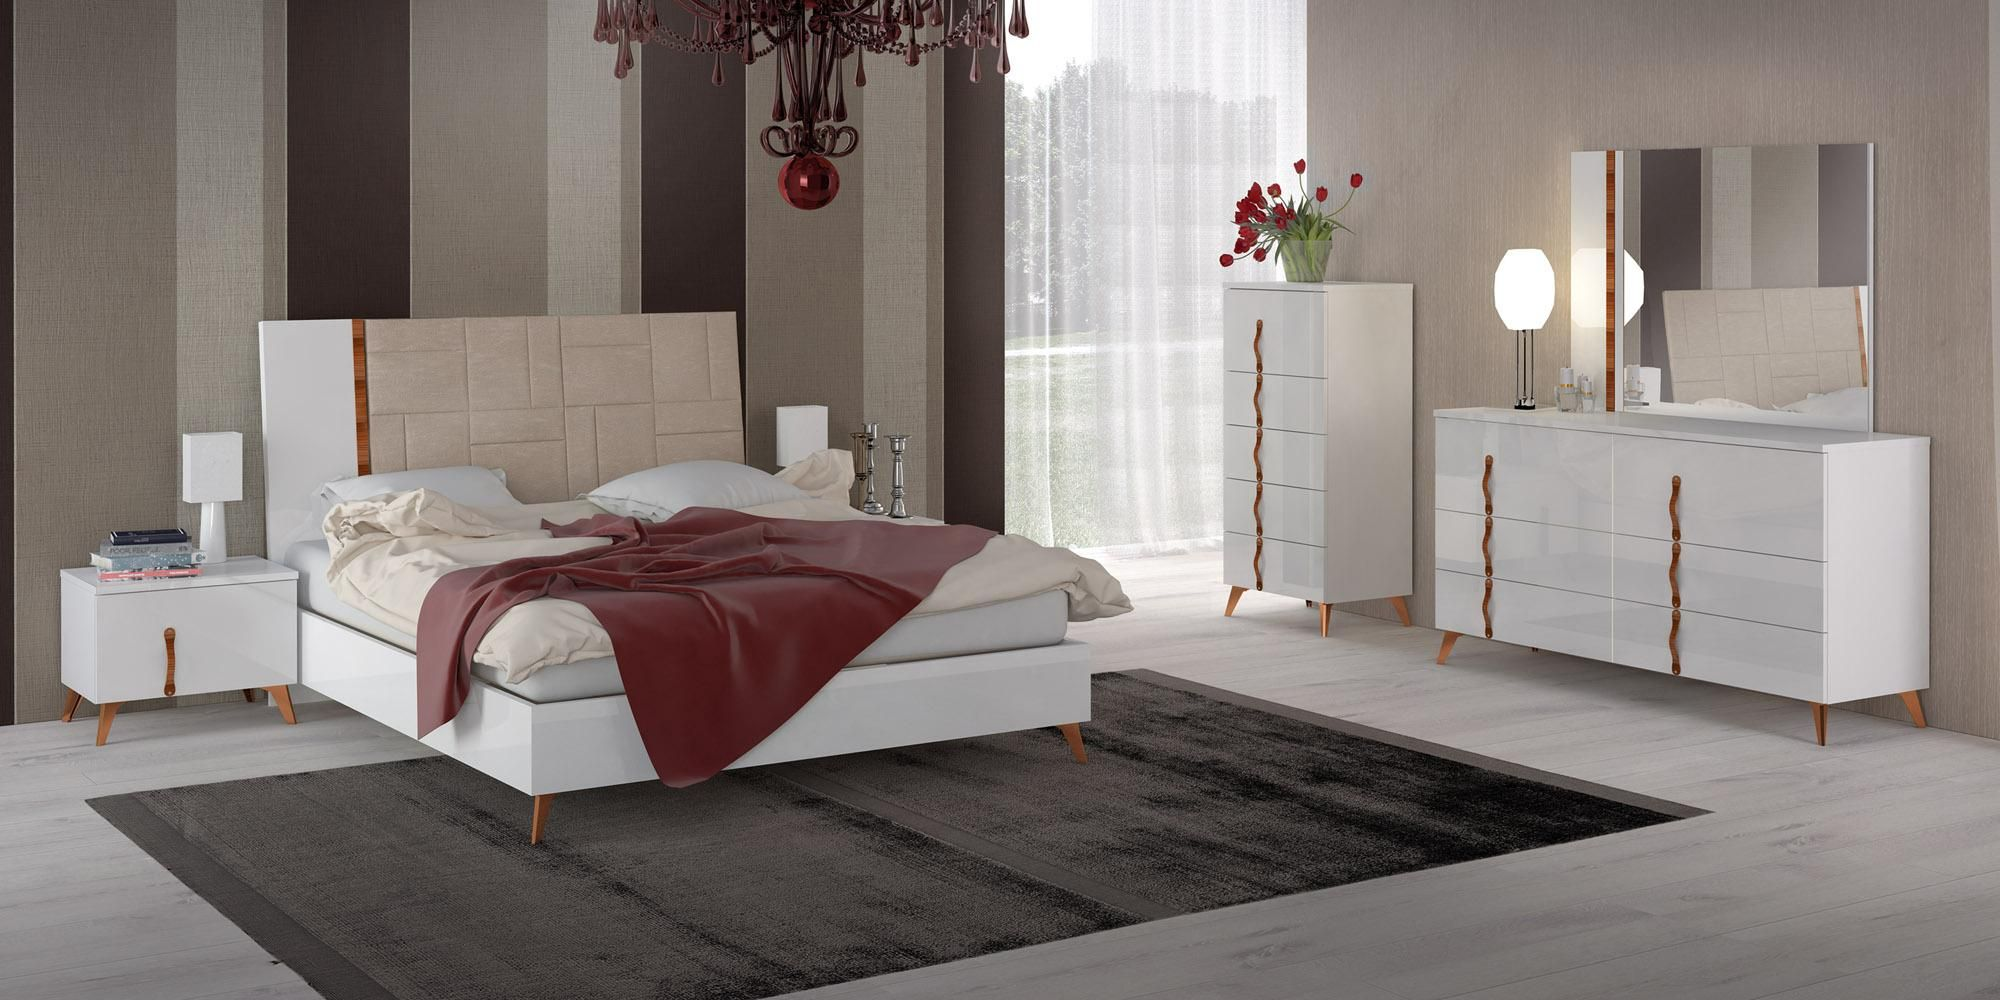 Contemporary Italian Bedroom Furniture In White Finish W Leather Headboard Bed Prime Class Modern Bedroom Furniture Italian Bedroom Furniture Italian Bedroom